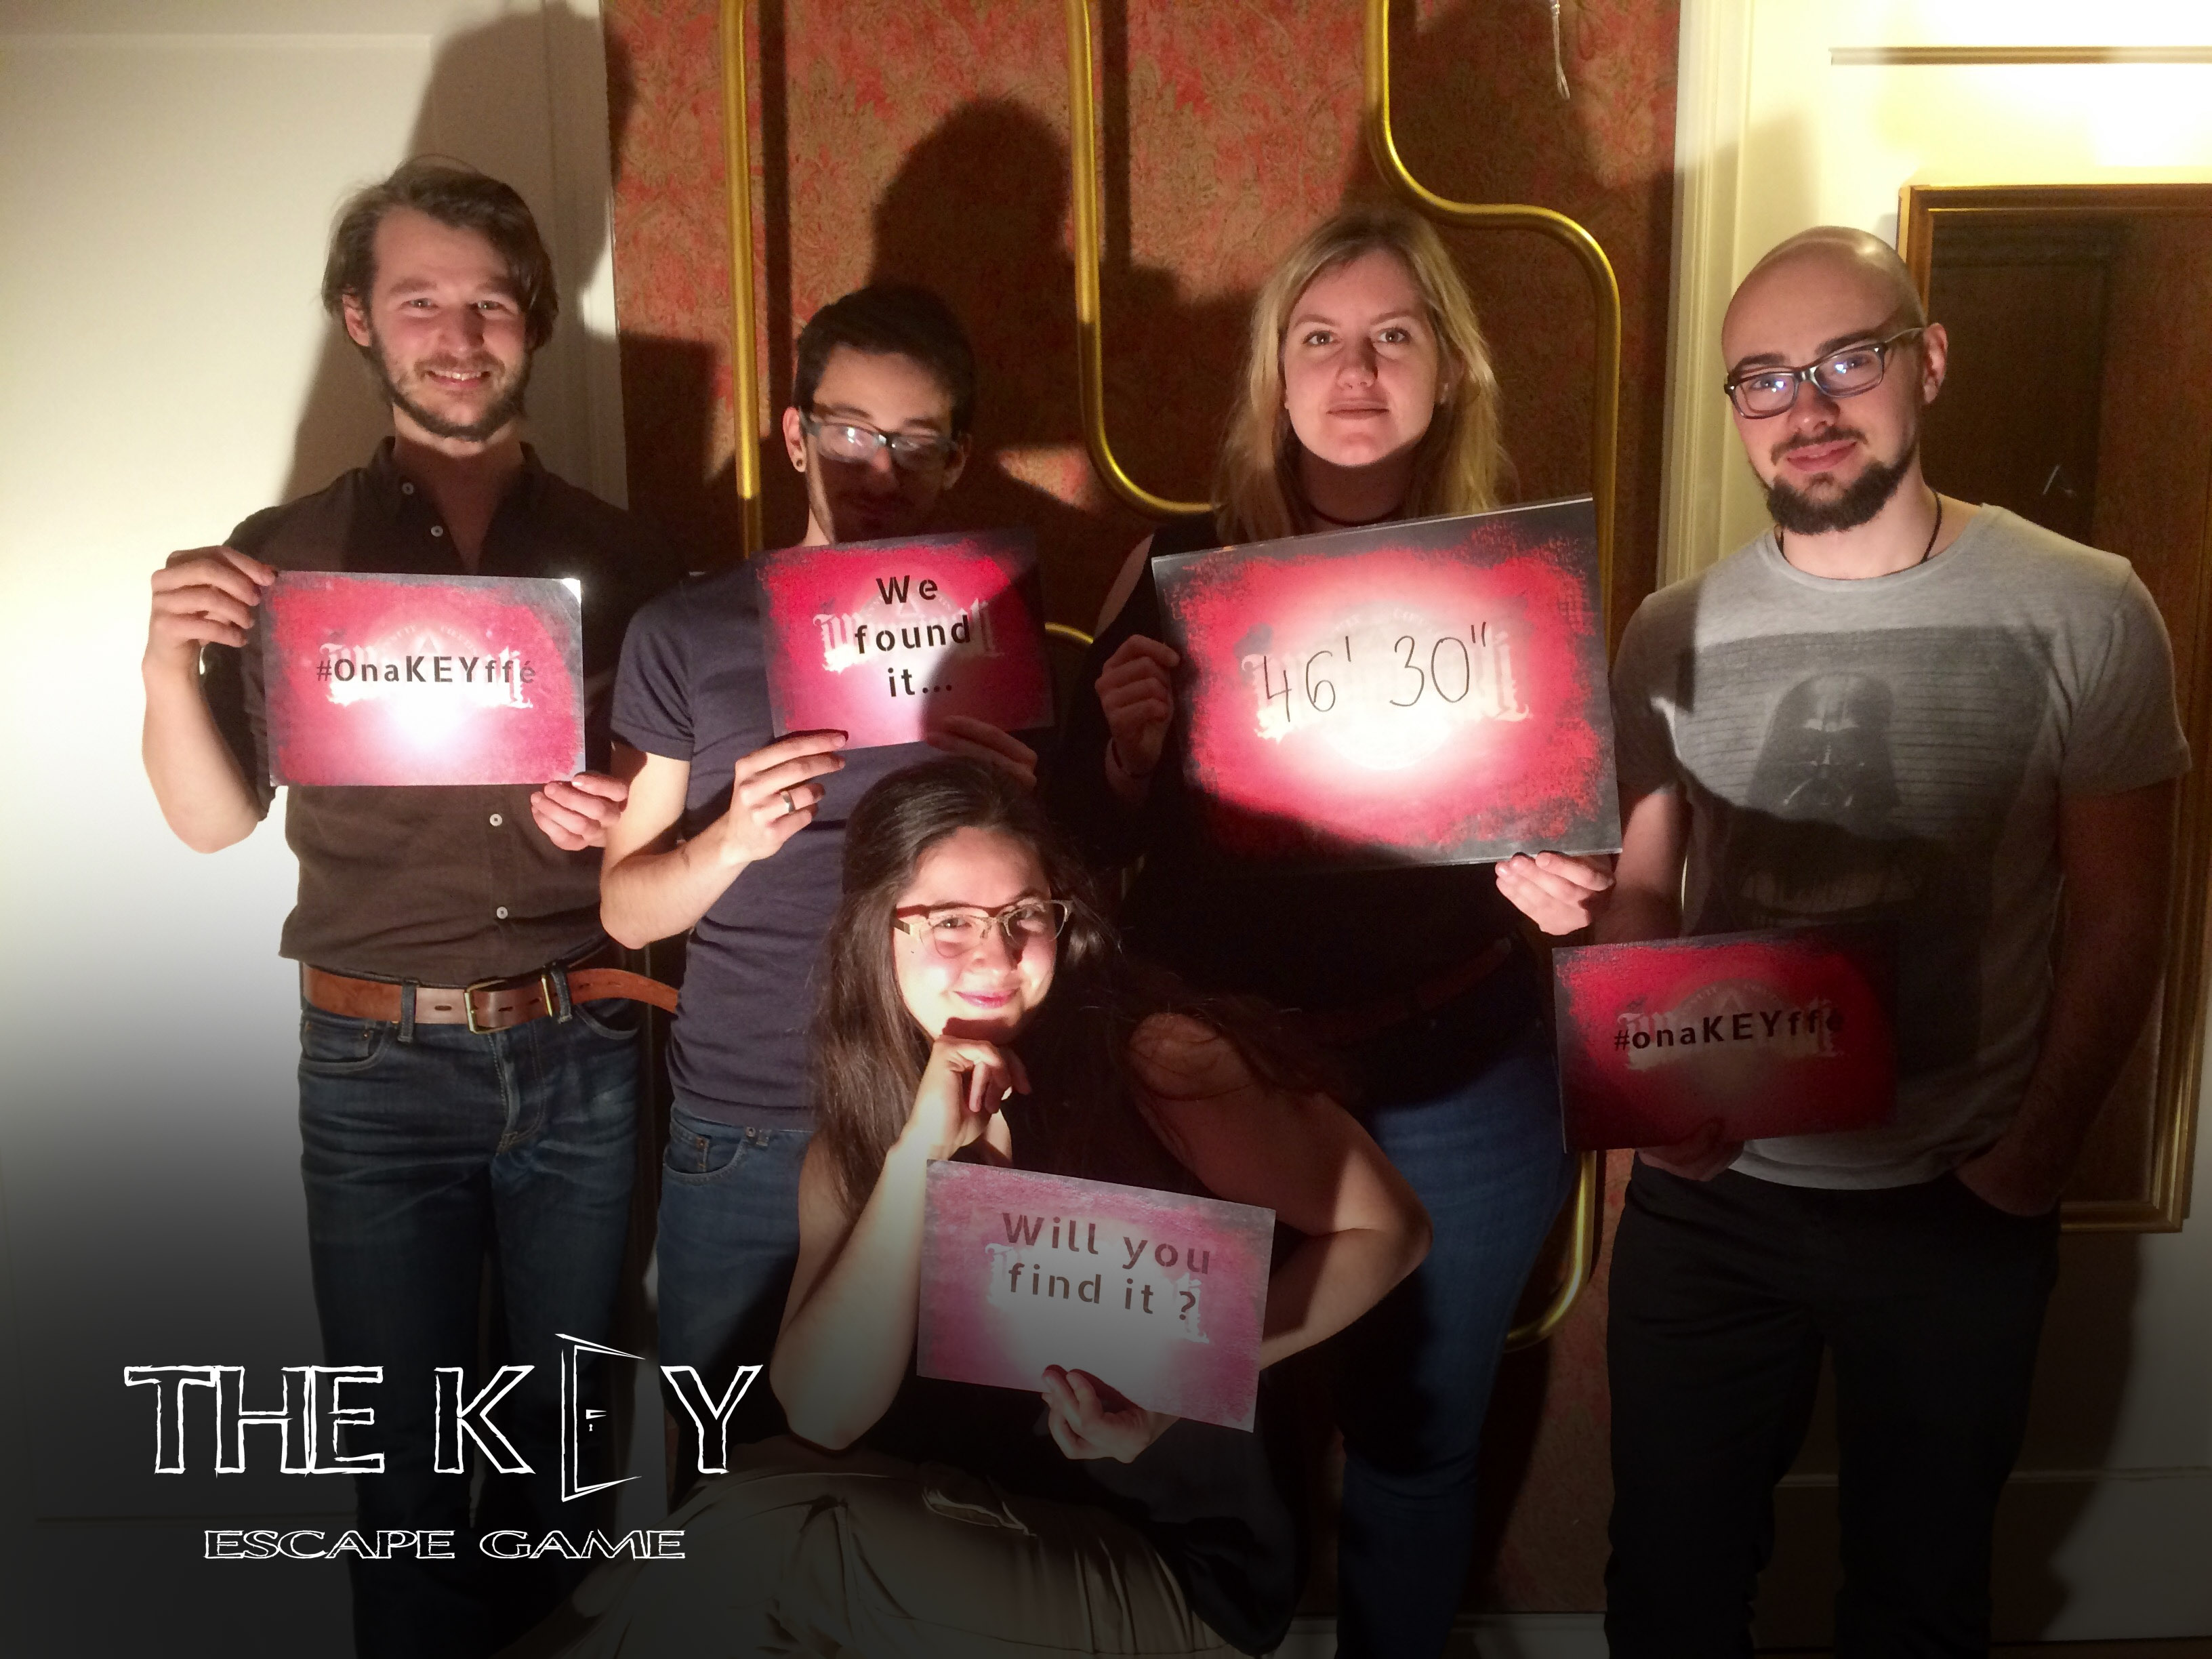 The KEY Best Escape Lausanne